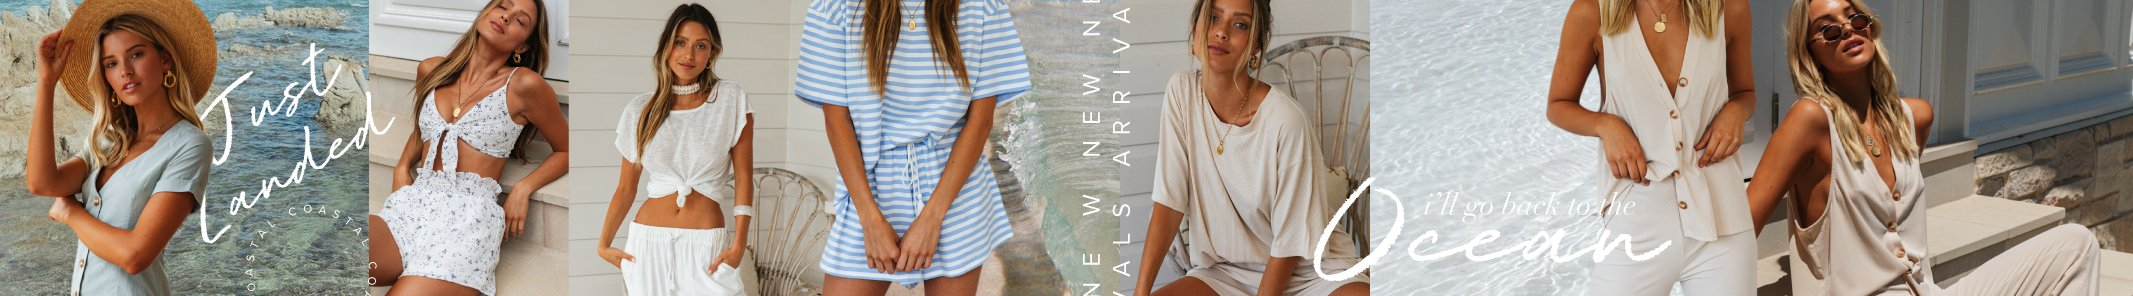 Mura Fashion - Playsuit